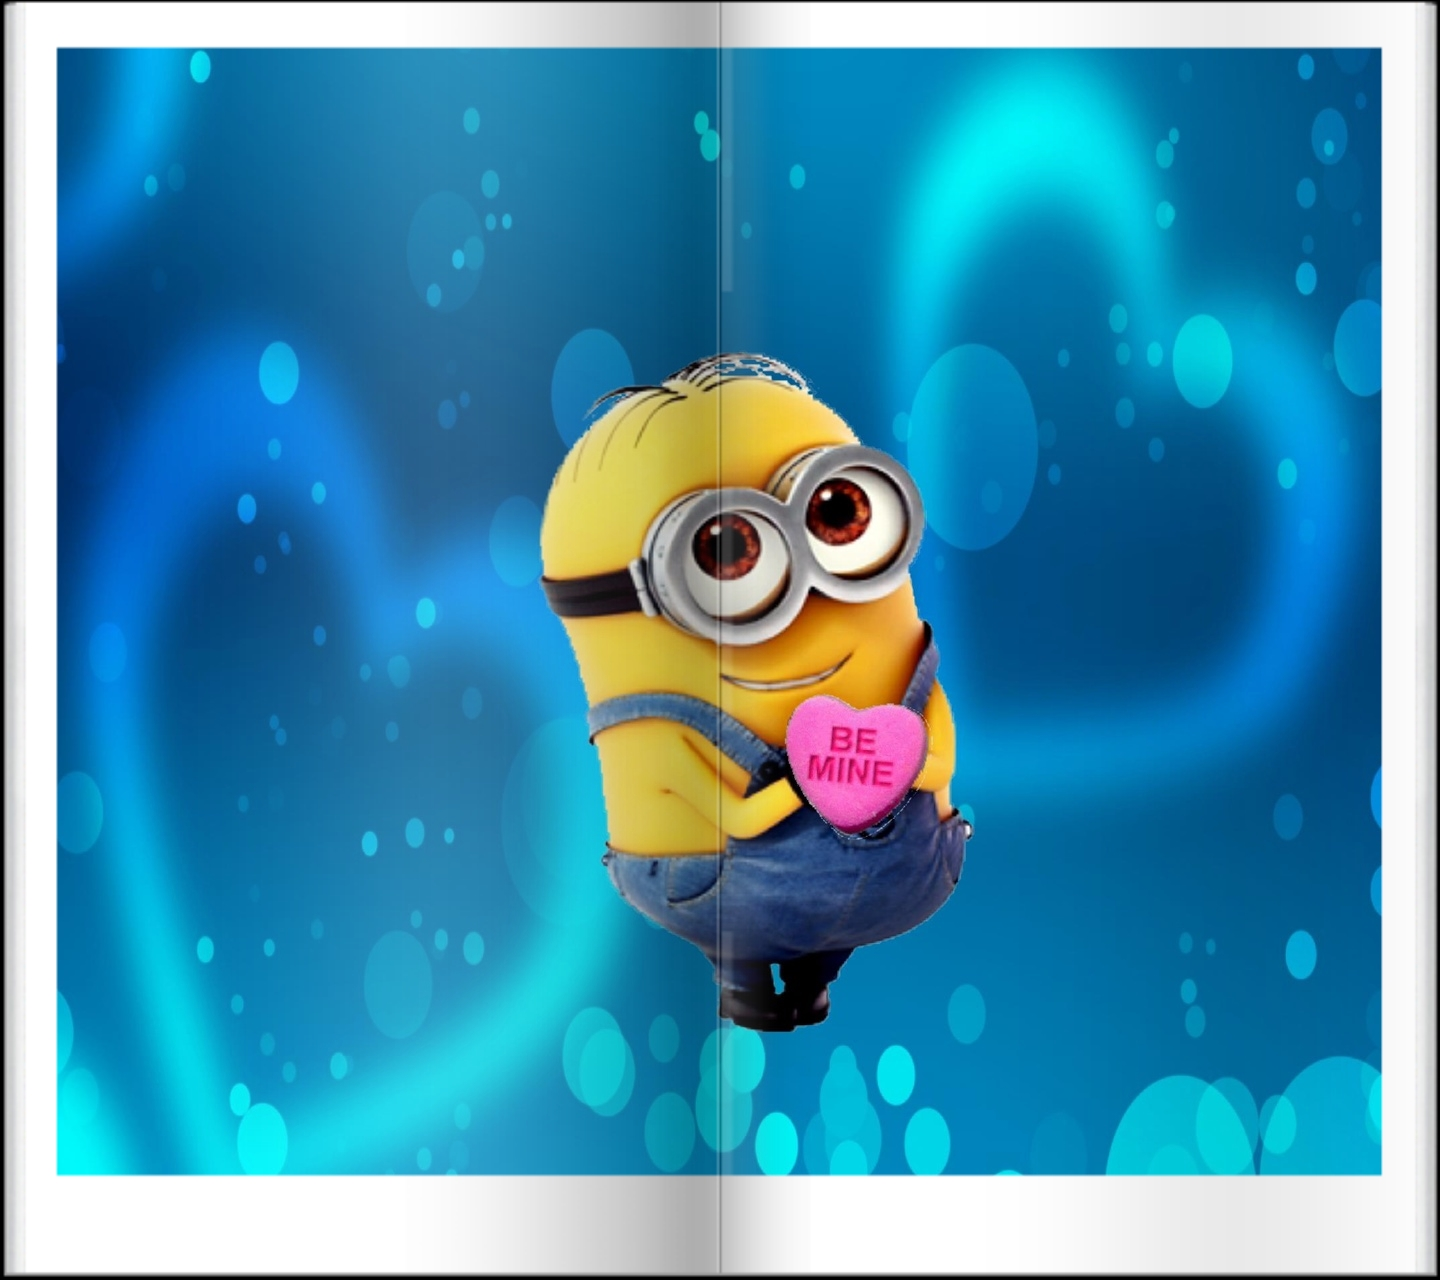 minions-photos-and-desktop-backgrounds-up-to-K-wallpaper-wpc9007690